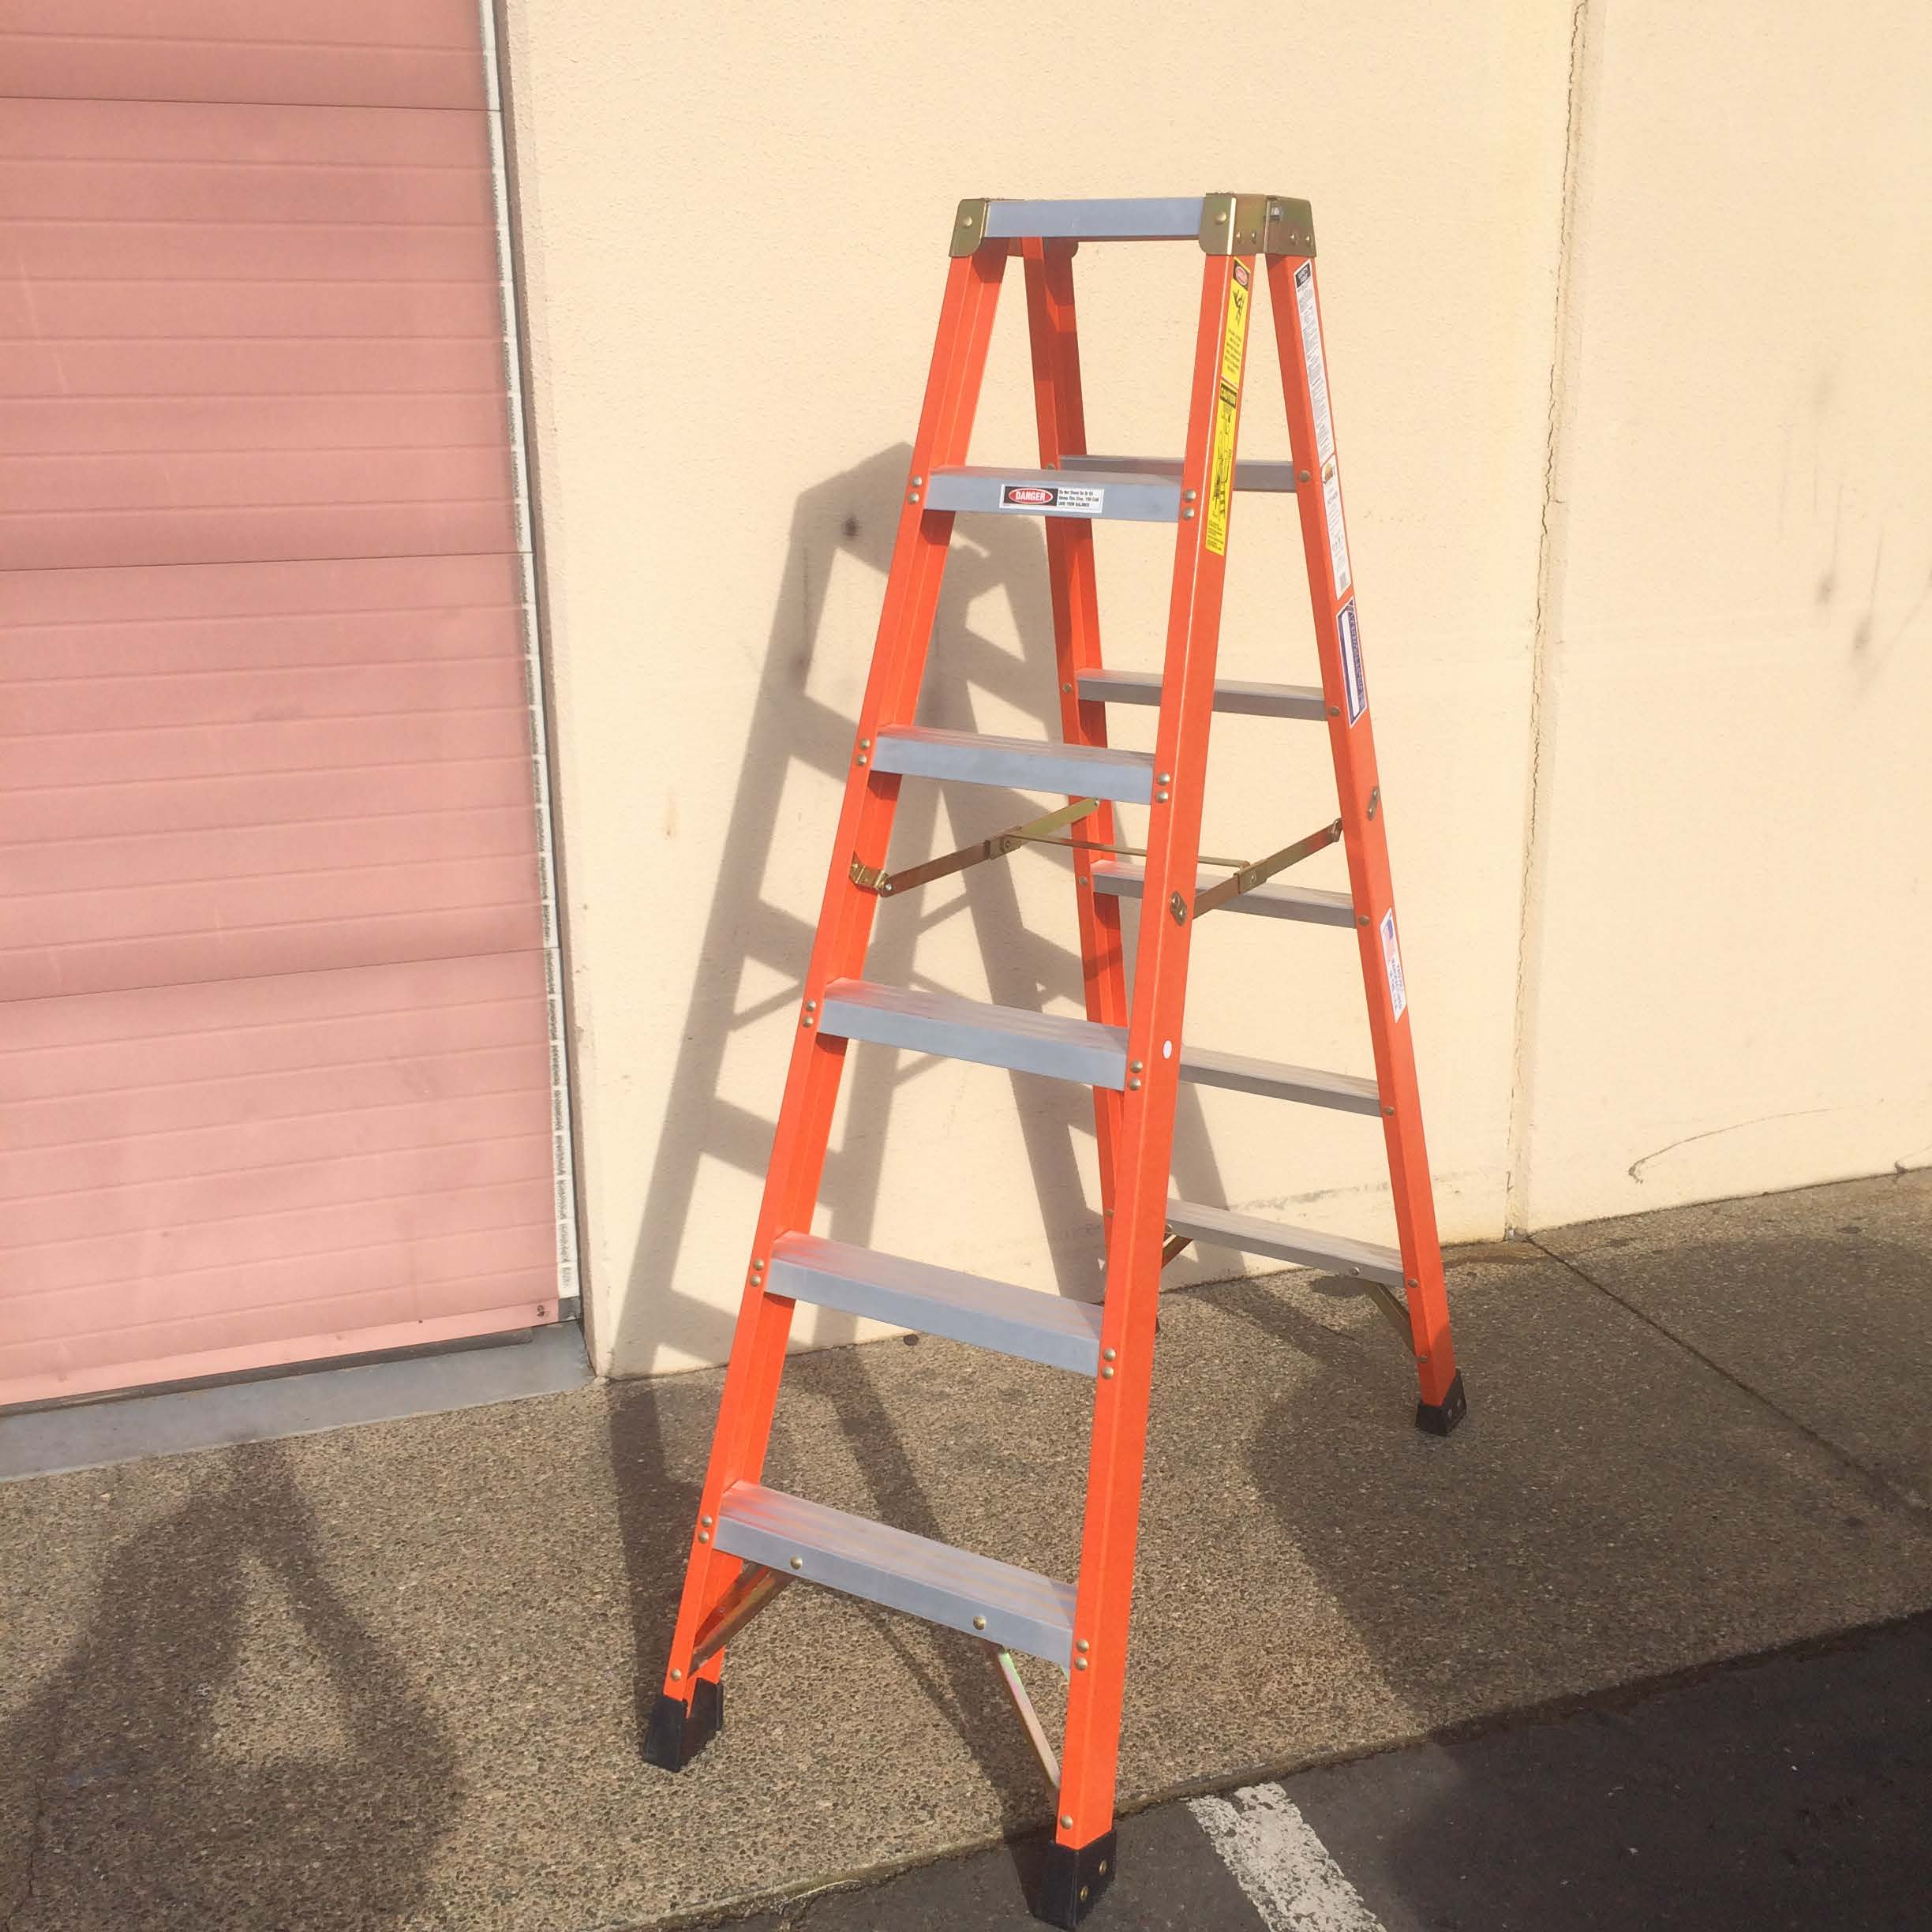 Double Step Ladder Sacramento, Double Step Ladder Oakland, Double Step Ladder San Francisco, Double Step Ladder Bay Area, Double Step Ladder San Jose